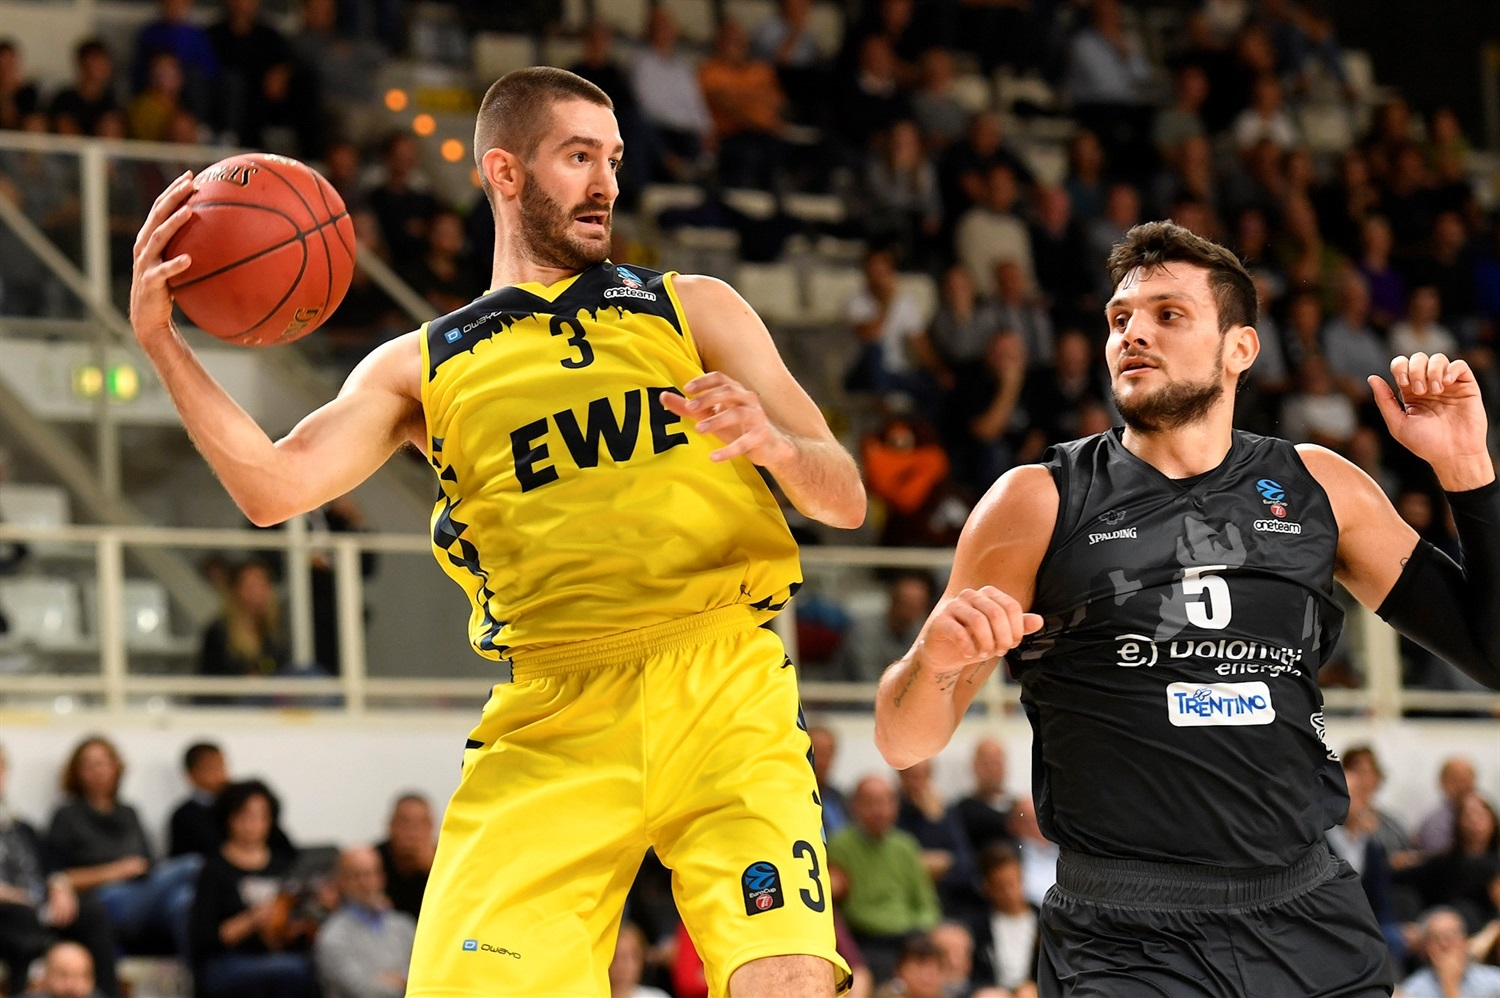 Braydon Hobbs - EWE Baskets Oldenburg (photo Trento) - EC19